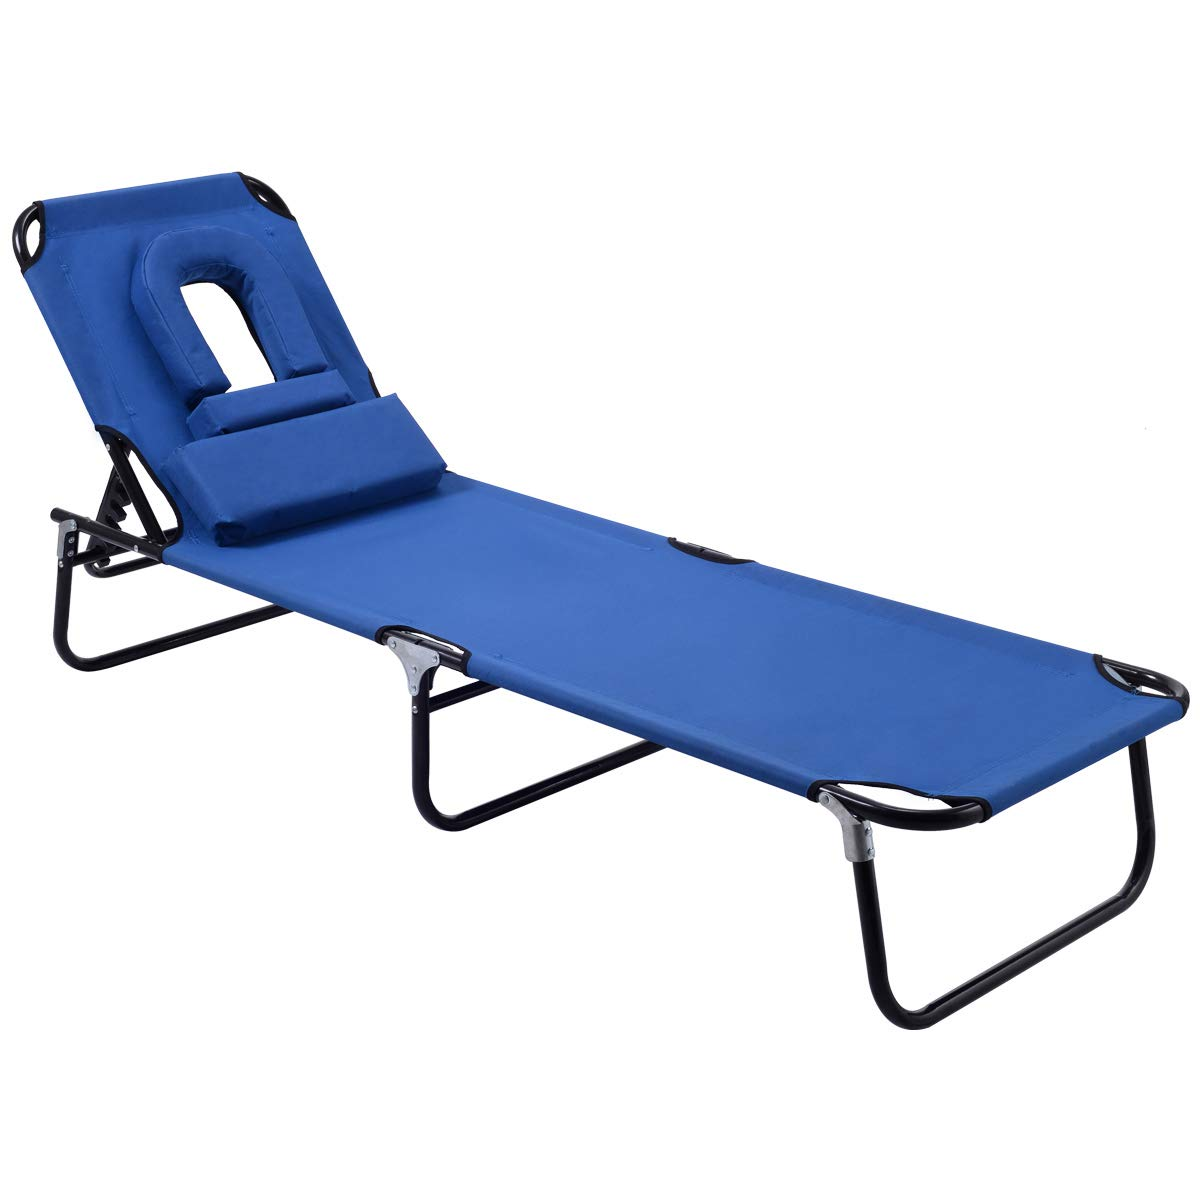 Goplus Folding Chaise Lounge Chair, Adjustable Back Outdoor Beach Pool w/Tanning Face Down Hole (Blue 1 Piece) by Goplus